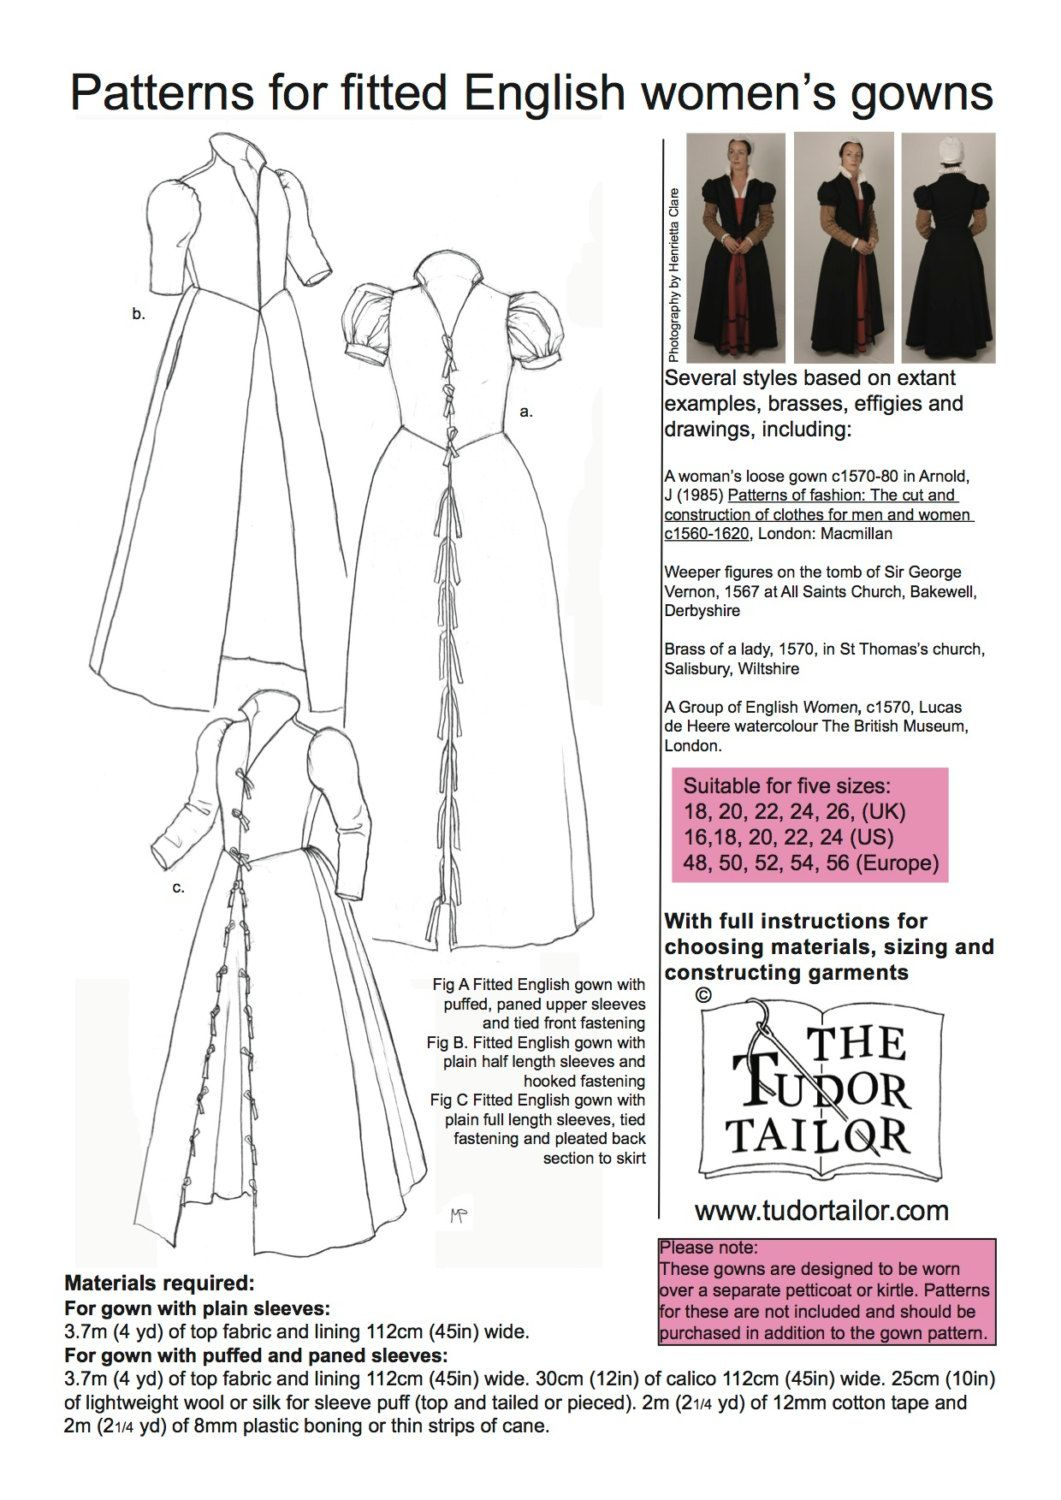 Shop The Tudor Tailor Pattern For Women S Elizabethan Fitted